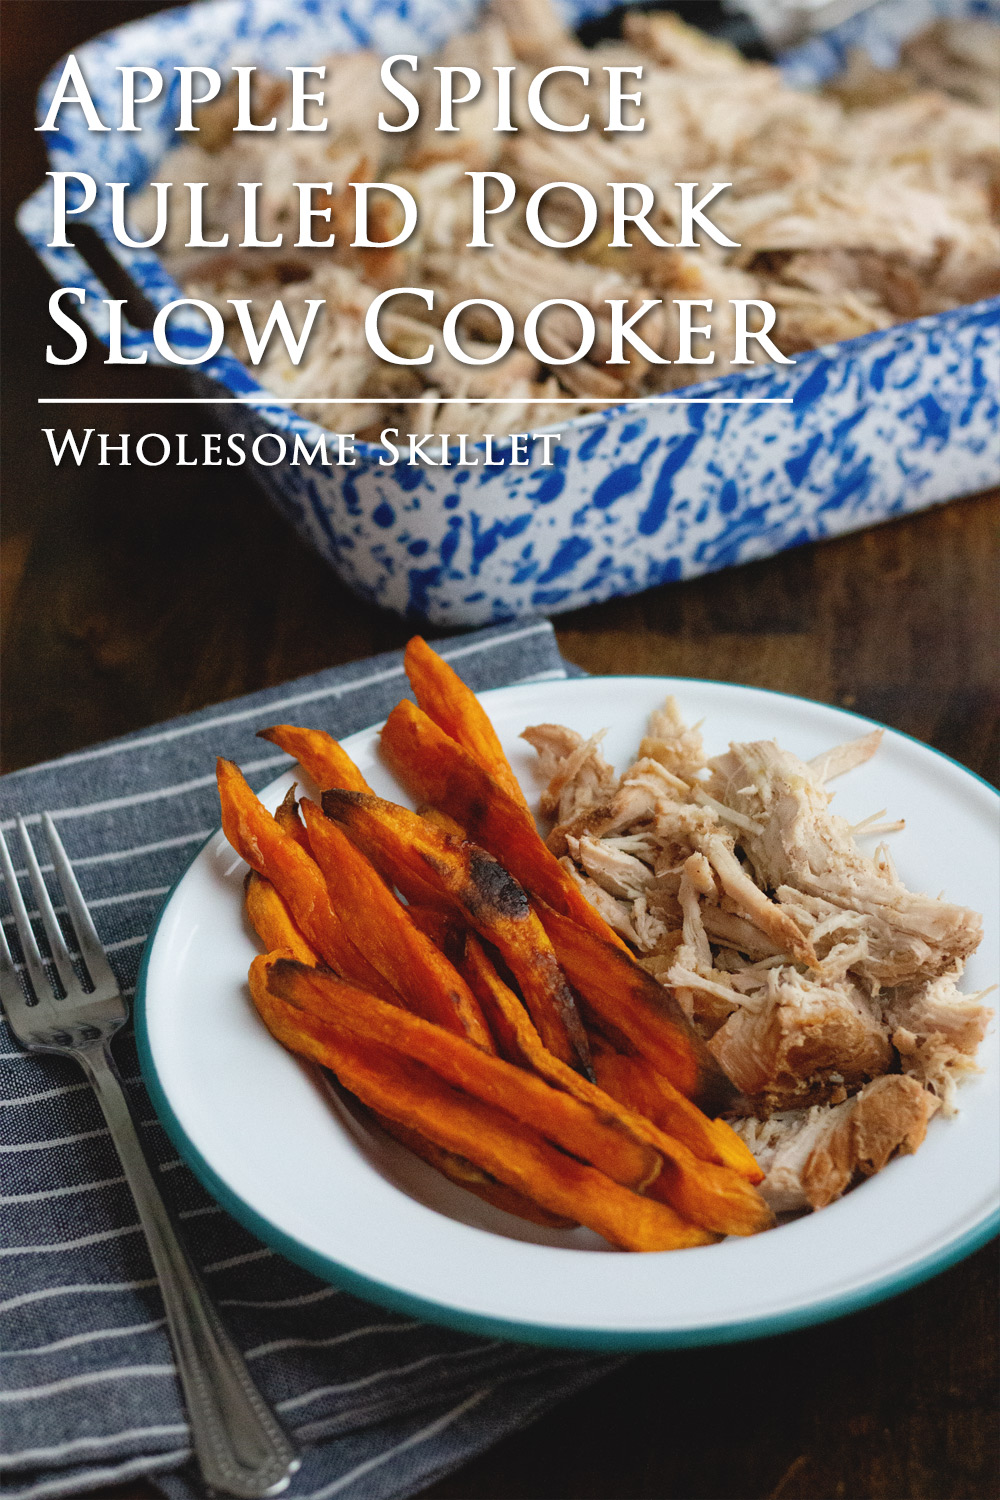 Apple Spiced Pulled Pork in the Slow Cooker - Recipe from Wholesome Skillet